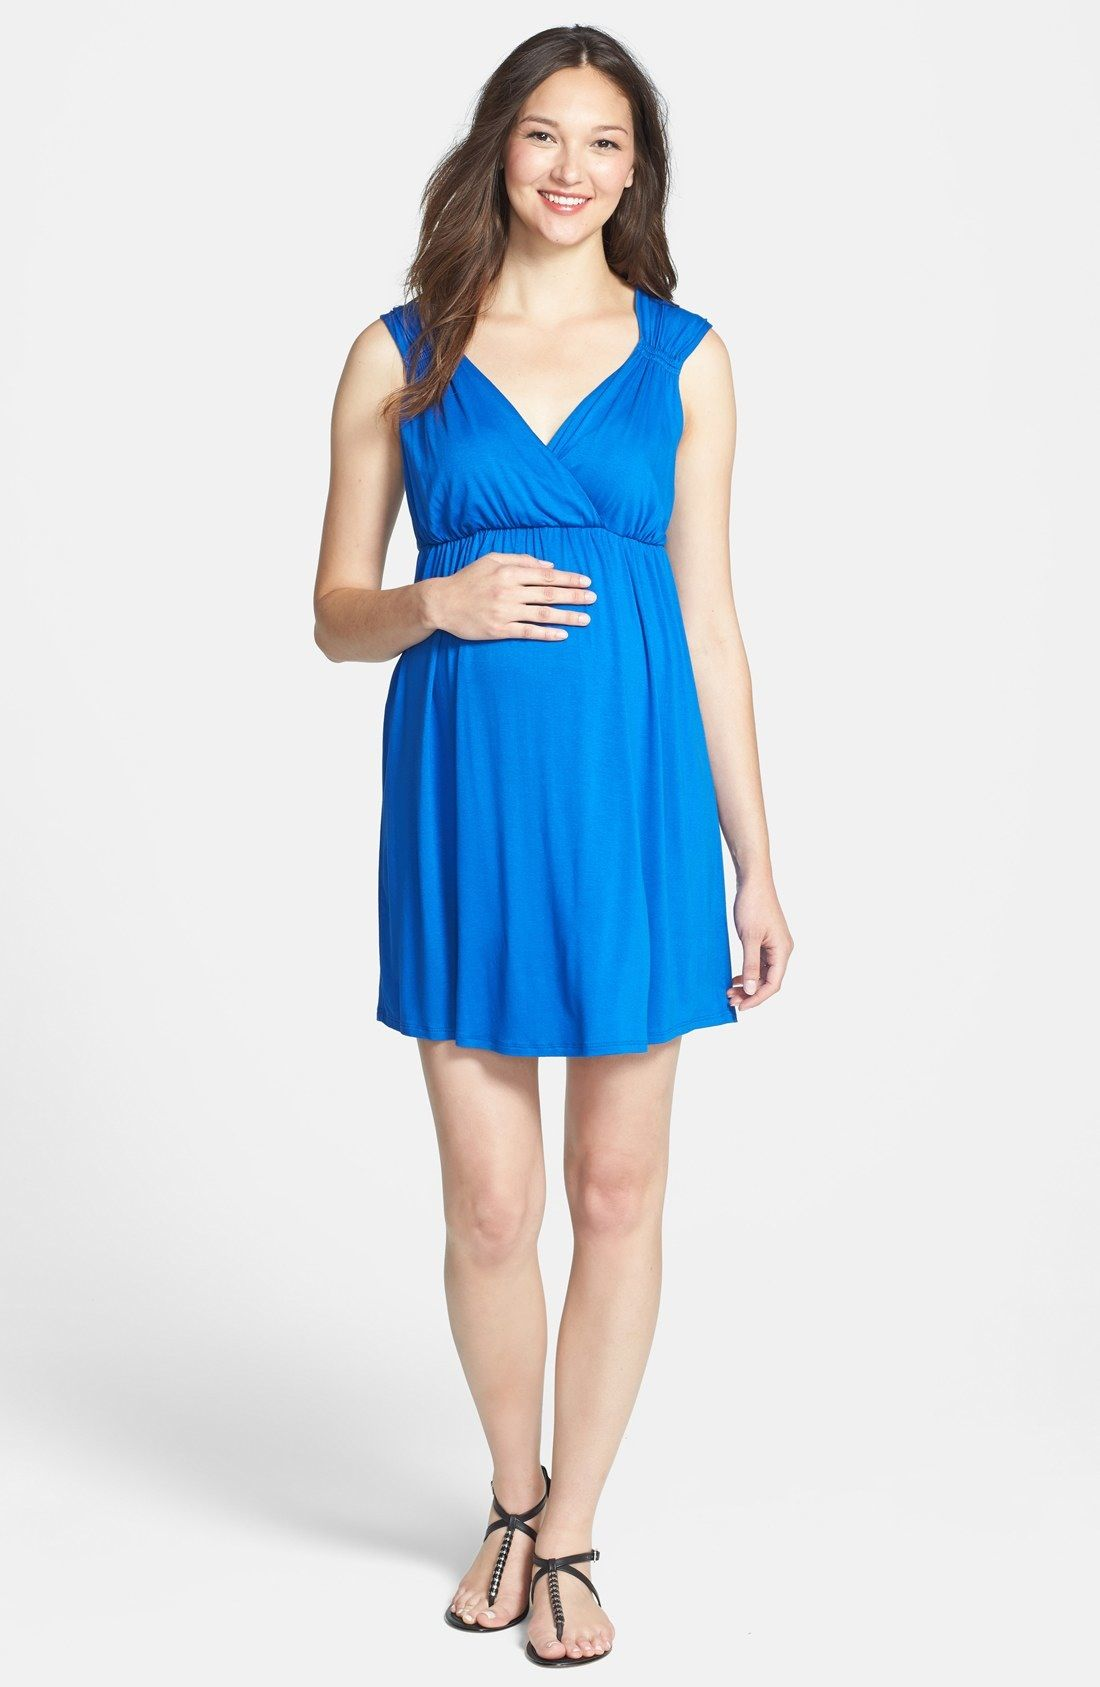 Maternal america uvanessau maternity dress available at nordstrom